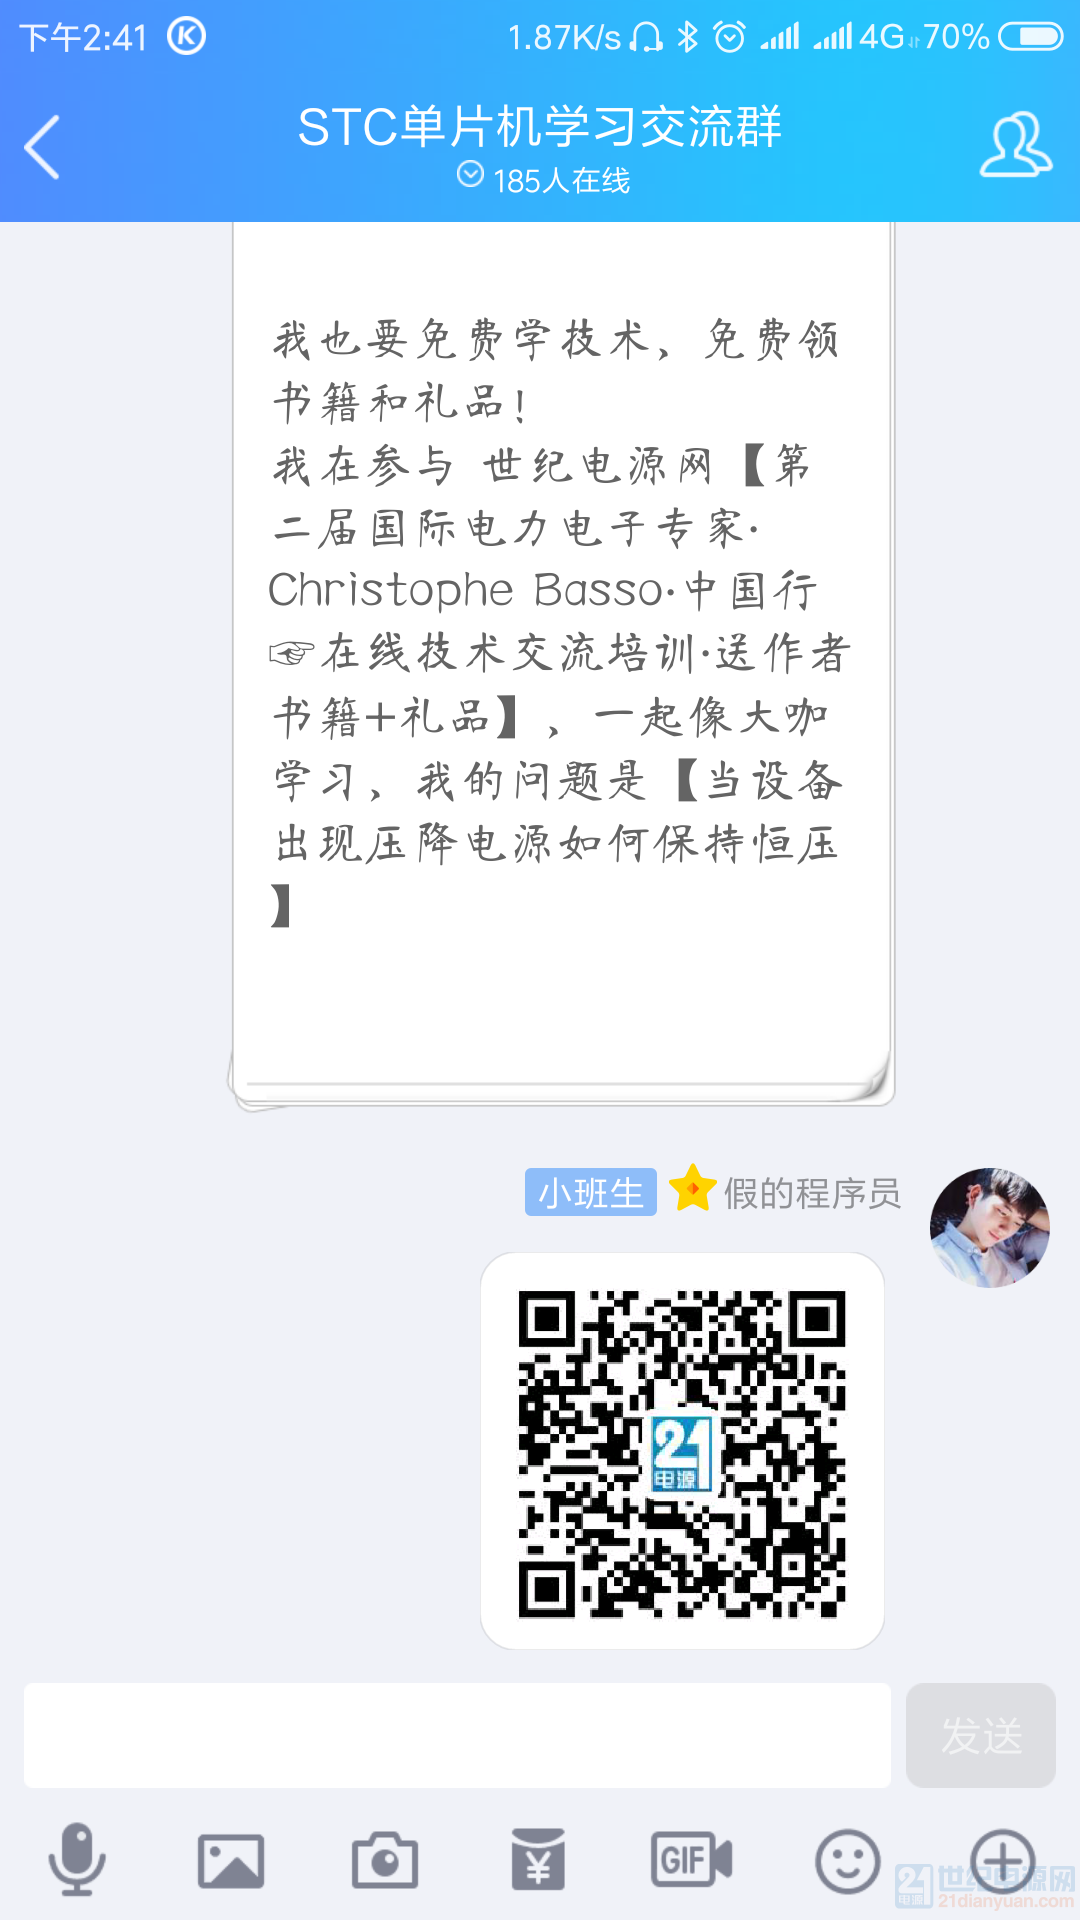 Screenshot_2018-10-12-14-41-57-442_com.tencent.mobileqq.png